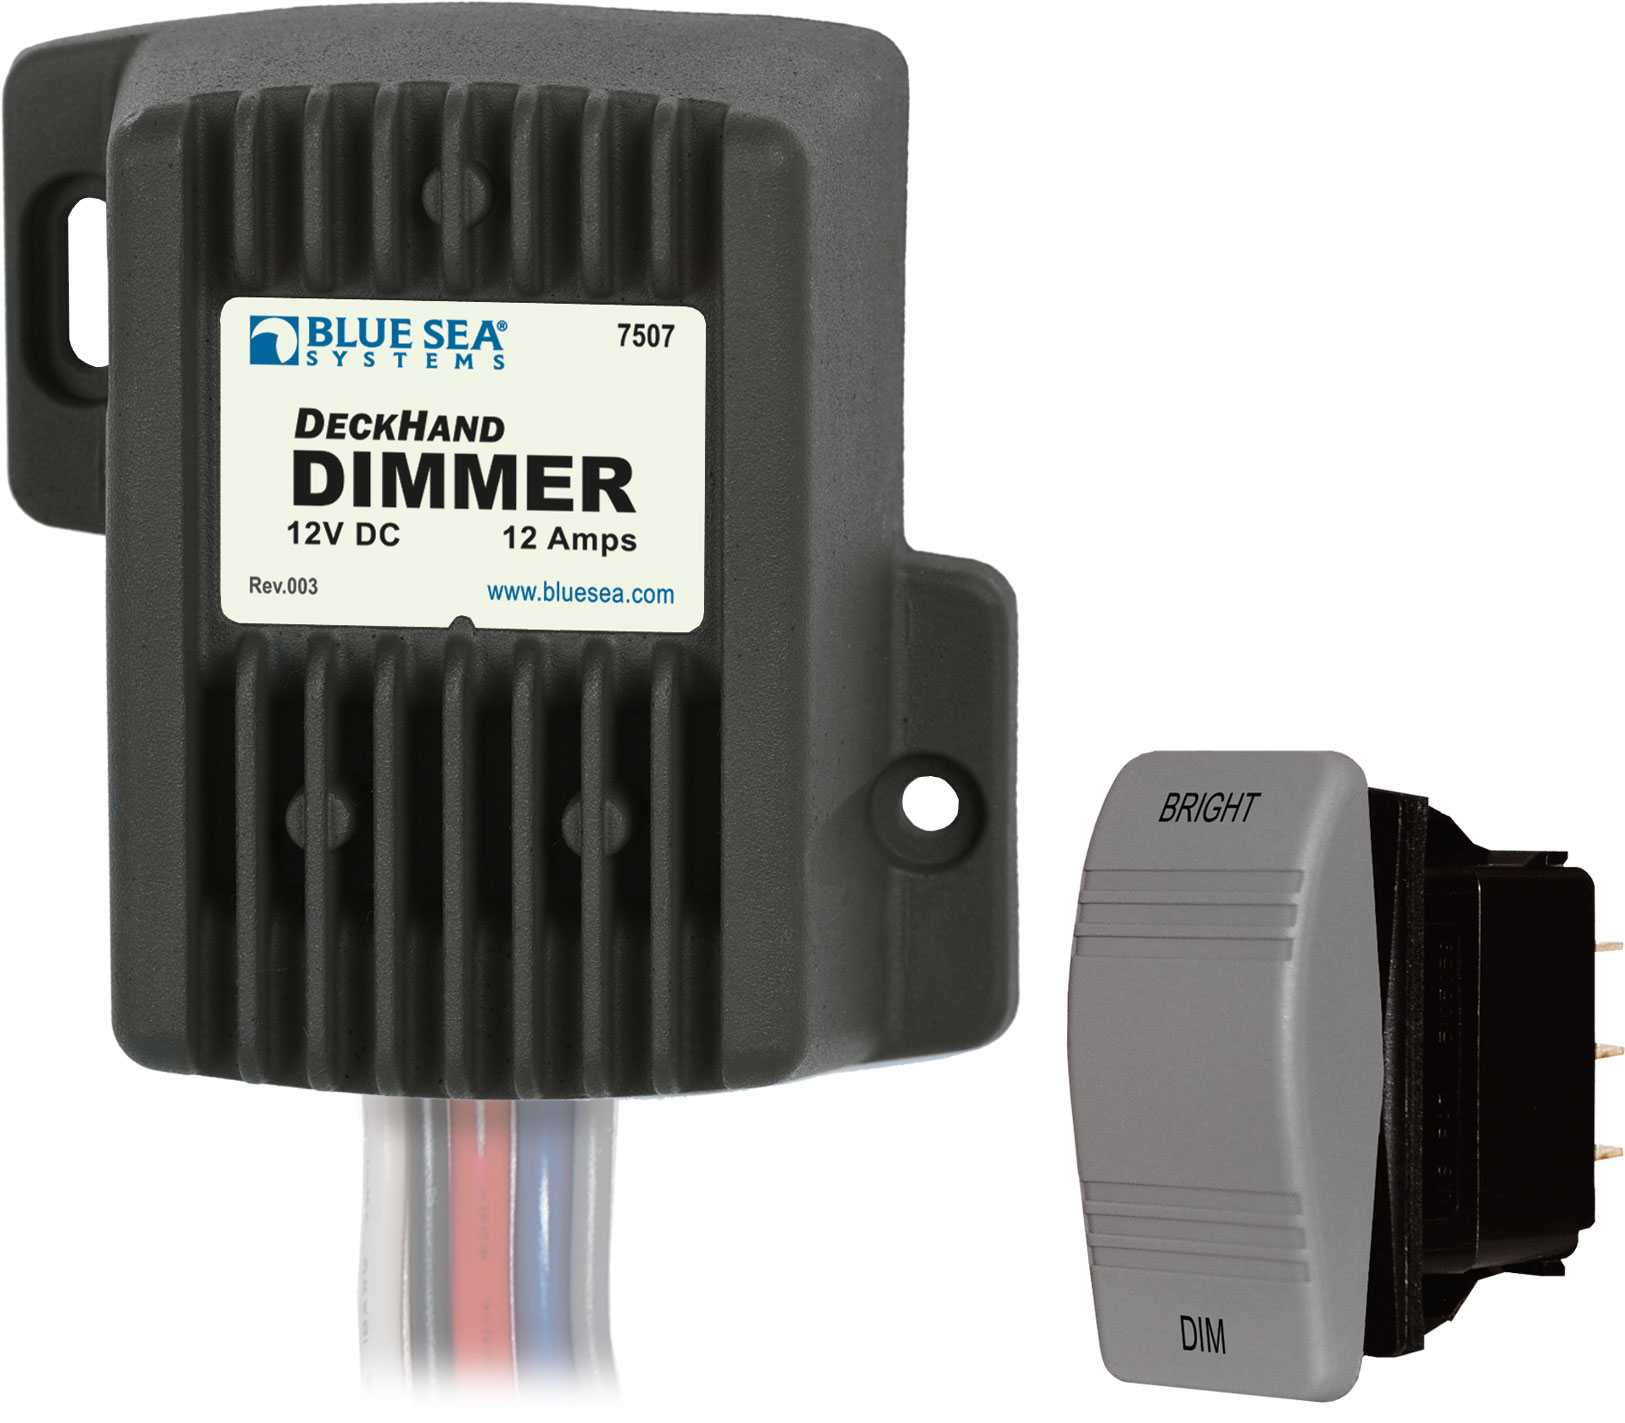 Deckhand Dimmer 12v Dc 12a Blue Sea Systems Product Image